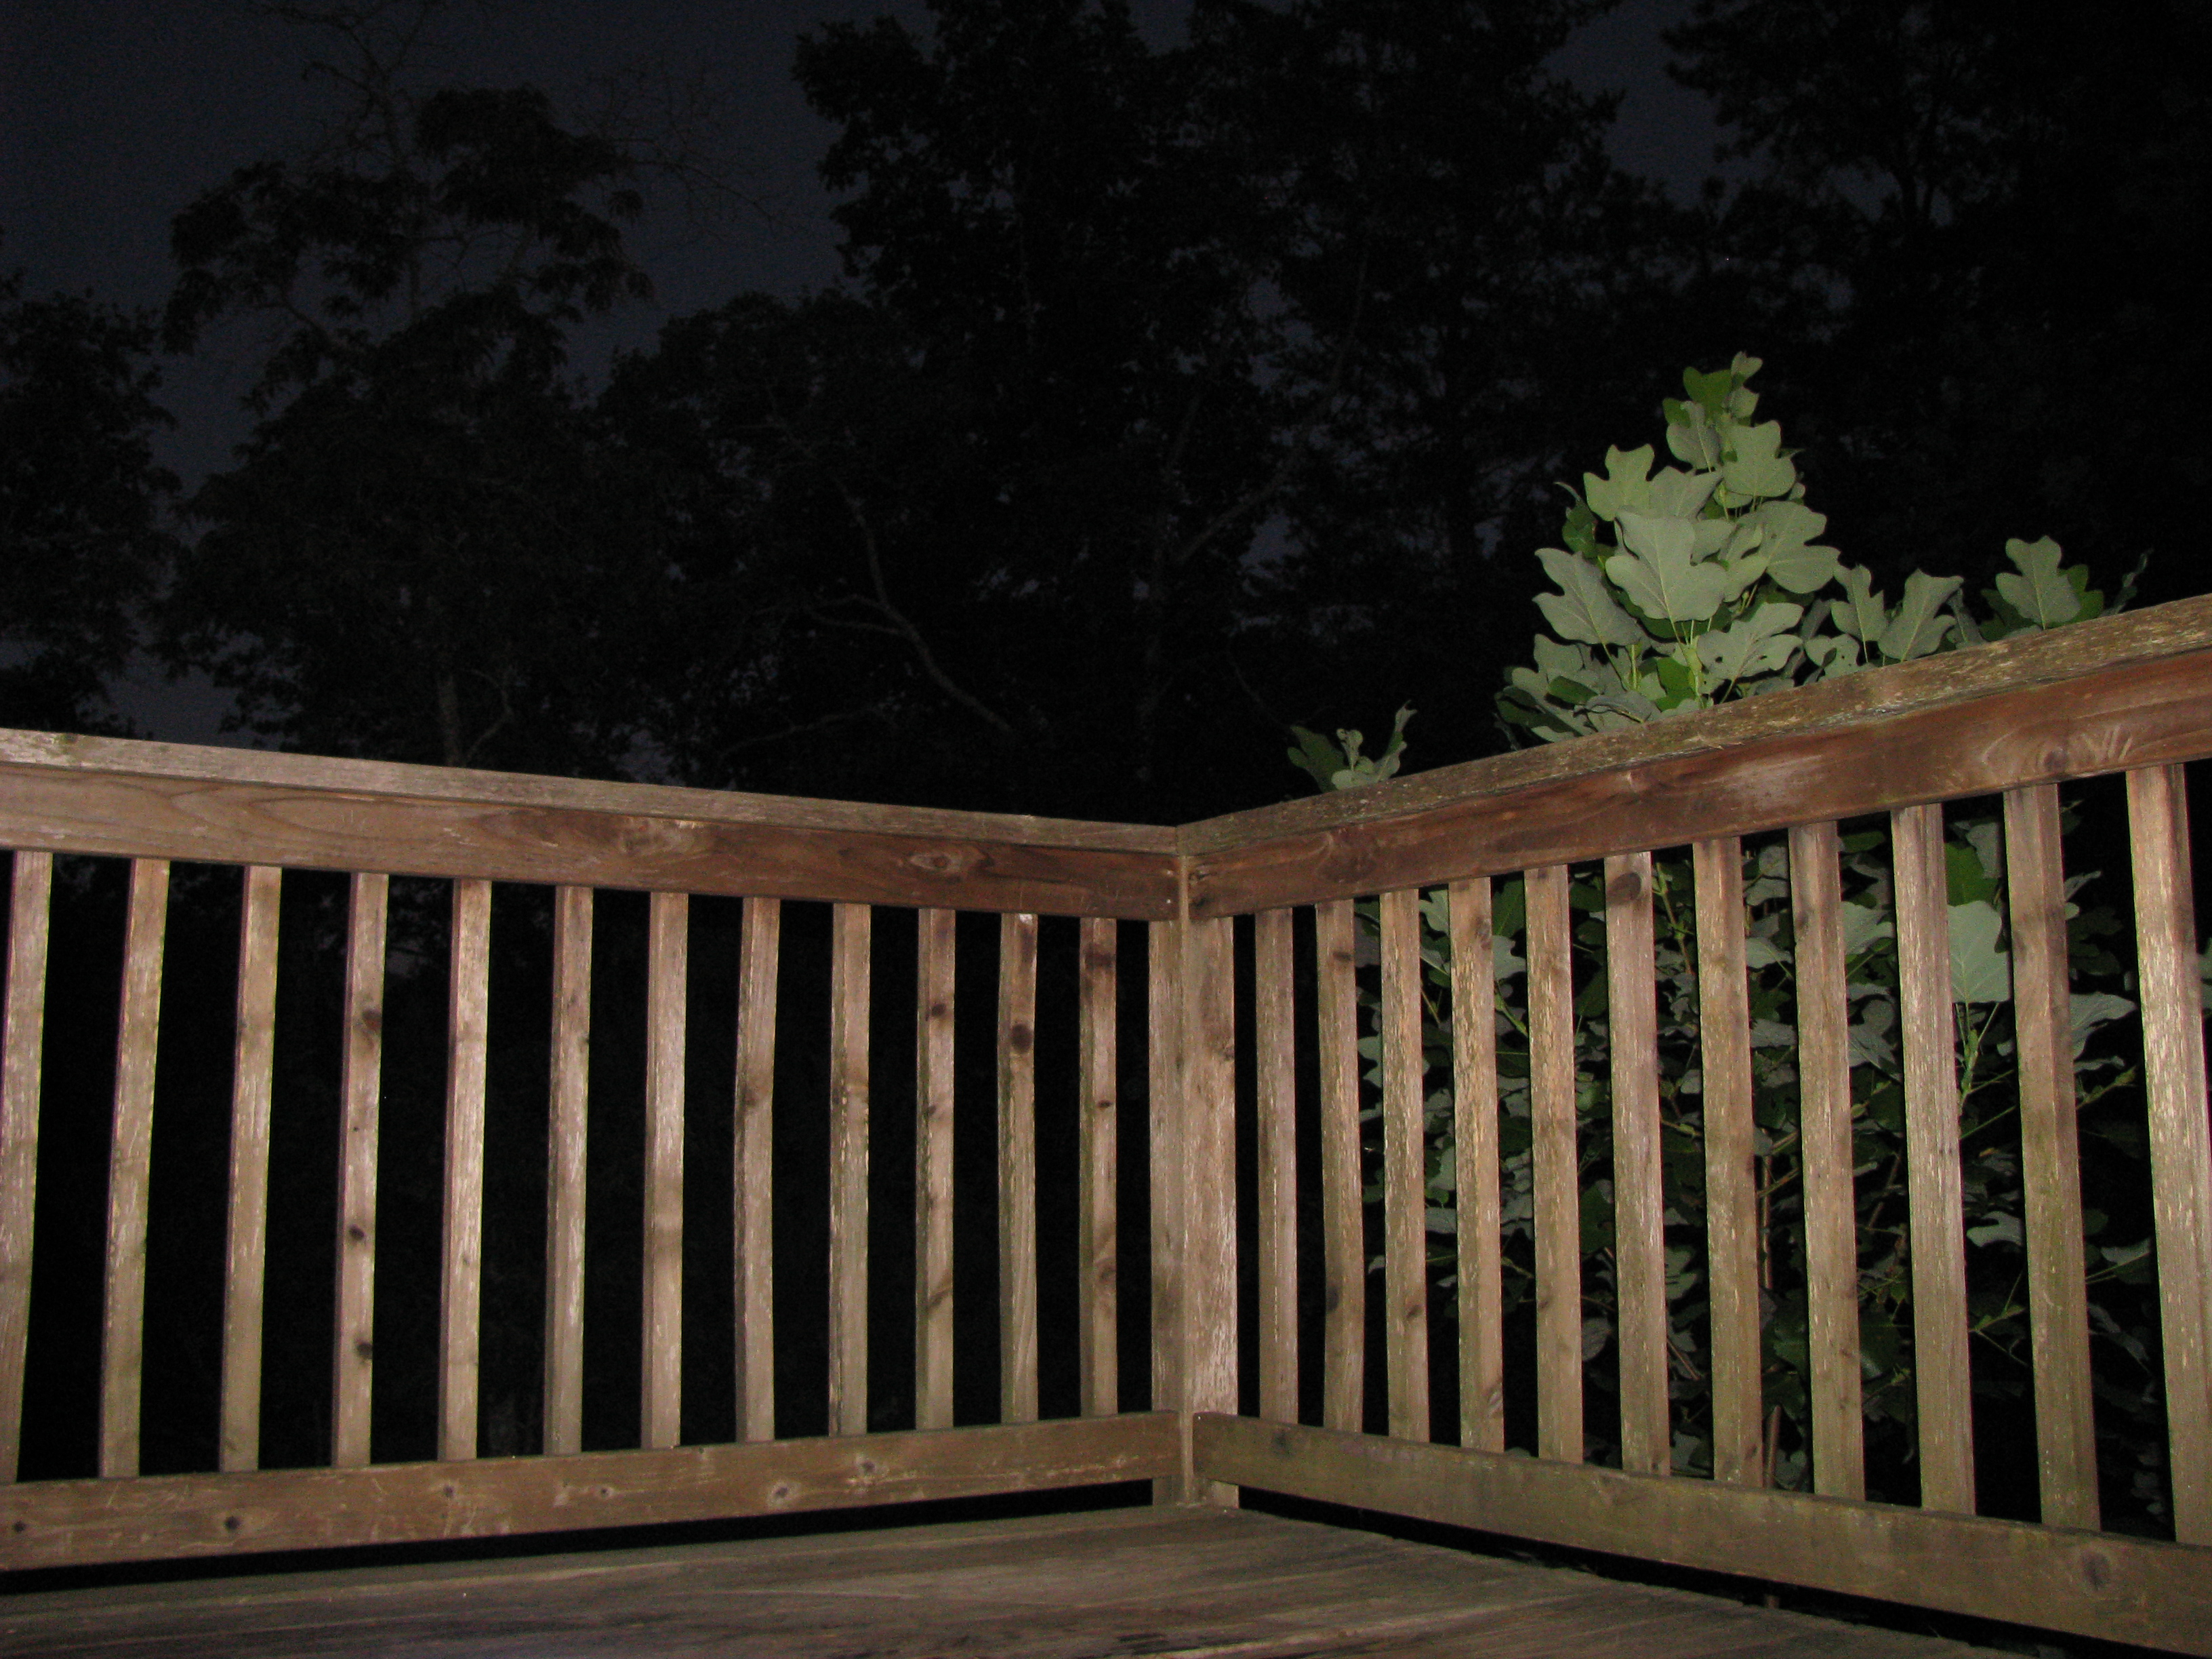 Wood Deck Railing deck railing - wikipedia, the free encyclopedia